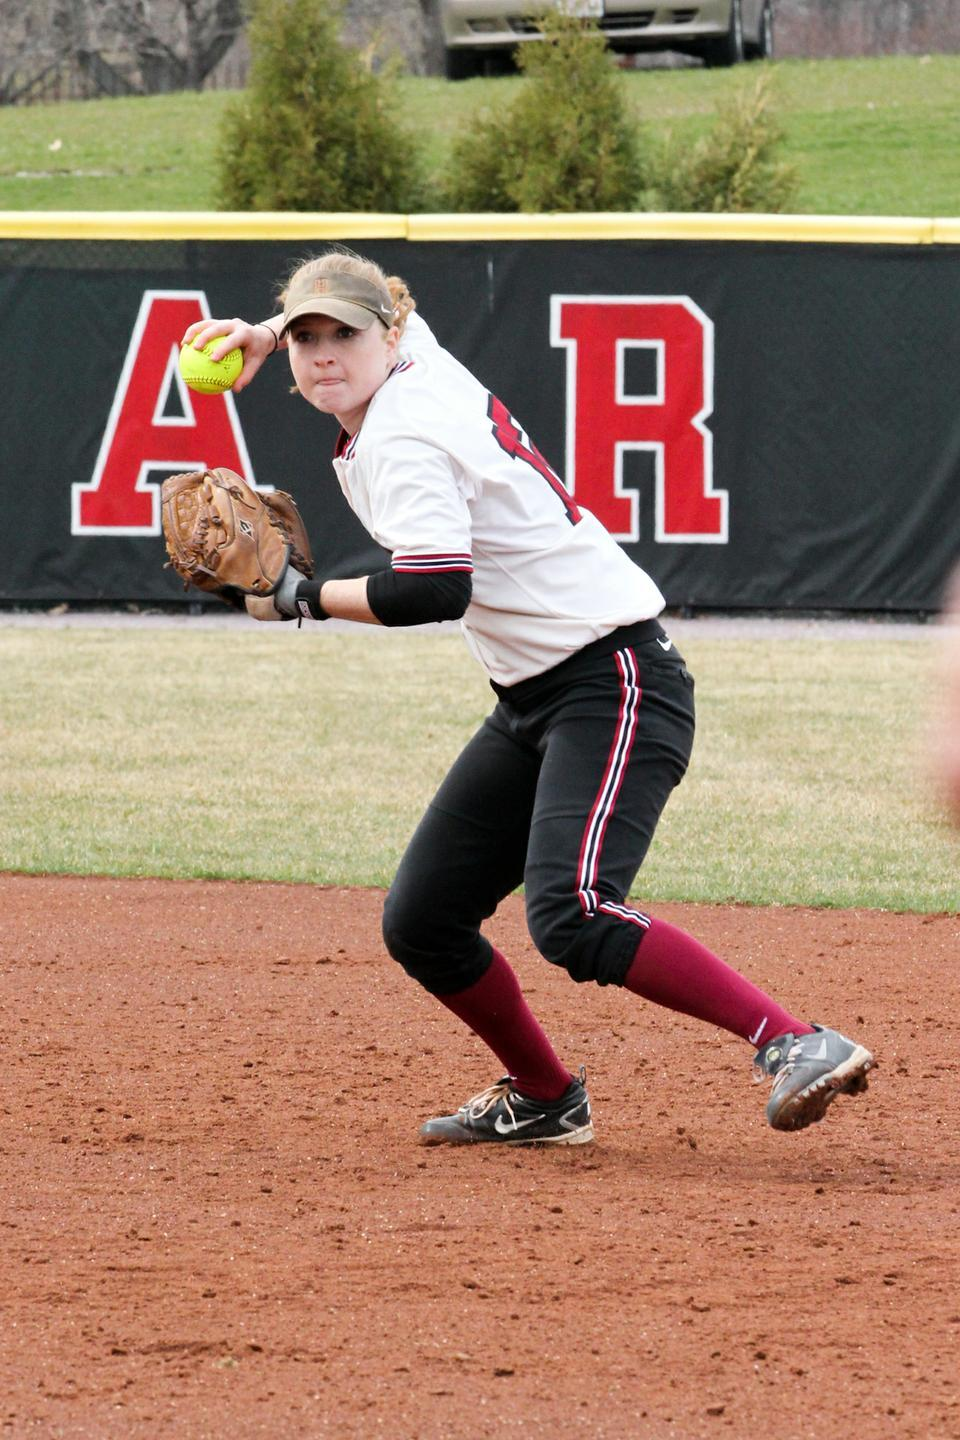 Co-captain Ellen Macadam boasts the best hitting average on the team at .411. This weekend, the senior showed her power at bat, homering off a pitch from Cornell's top hurler, Elizabeth Dalrymple.